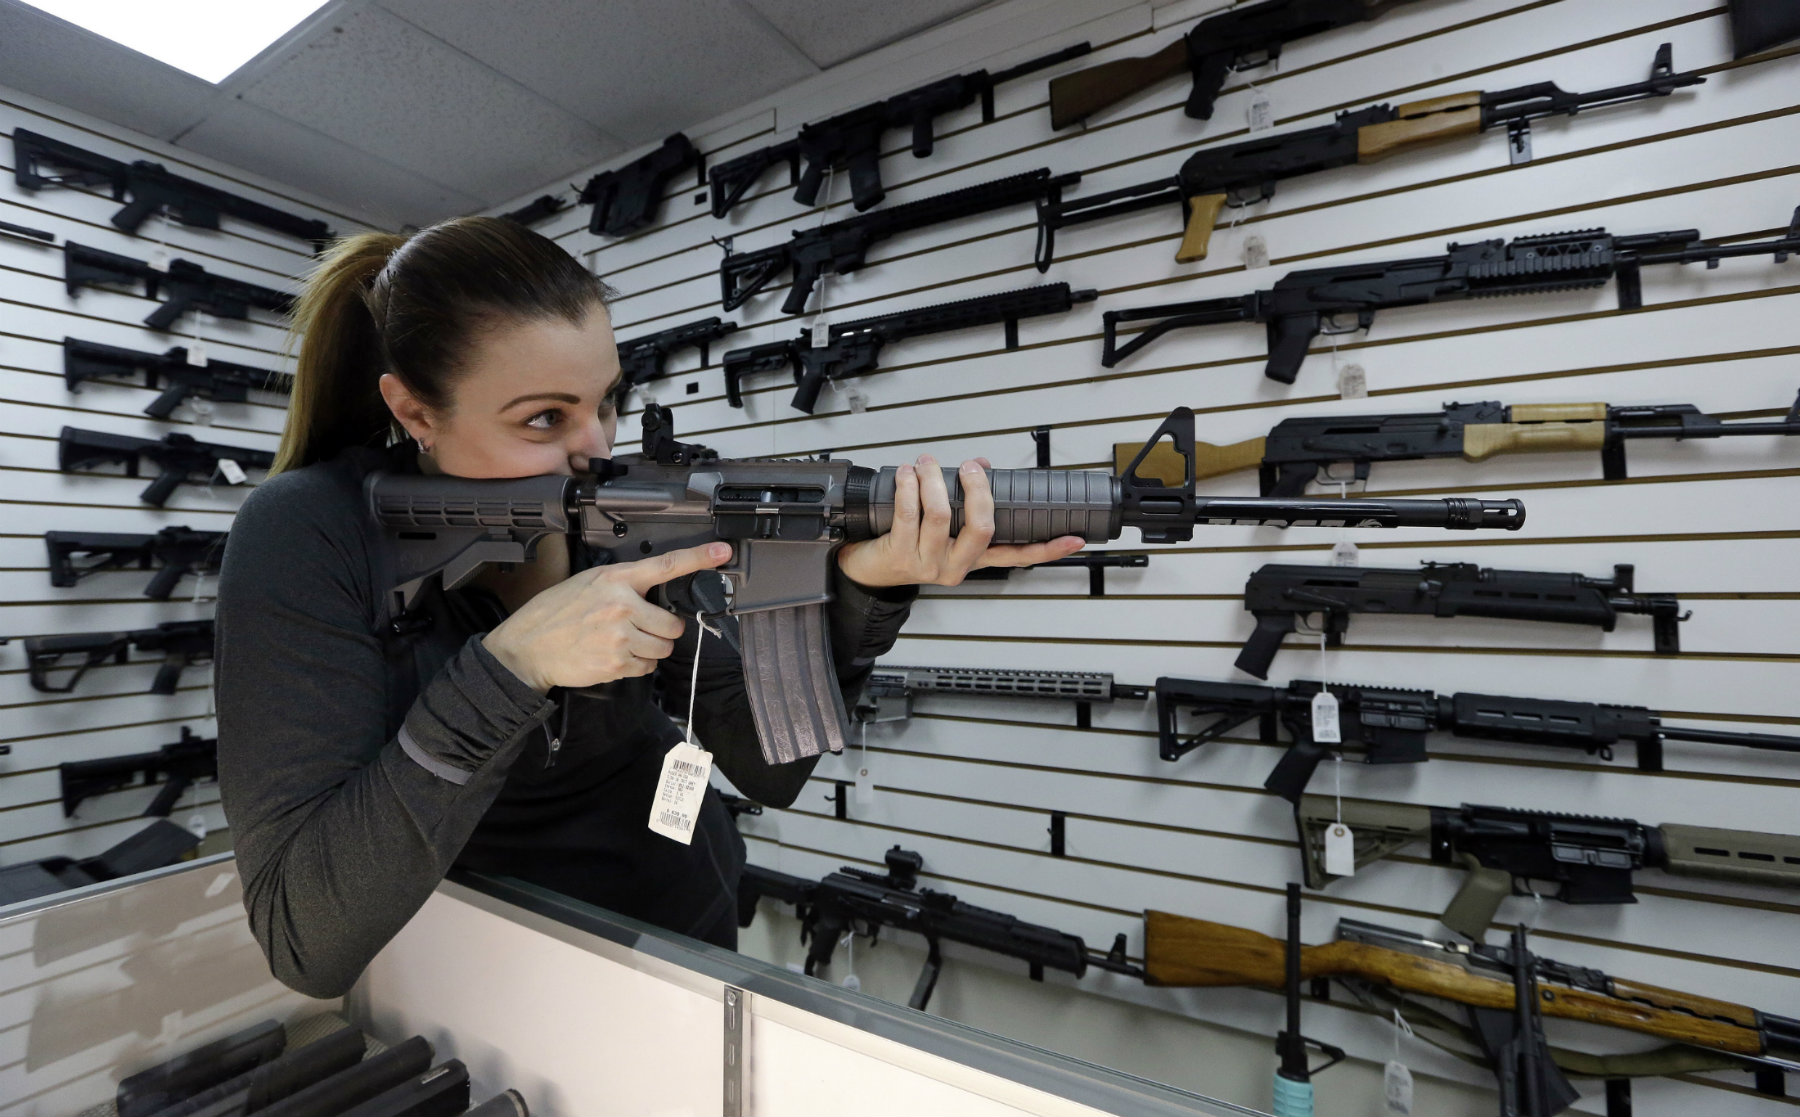 Gun shop owner Tiffany Teasdale-Causer points a Ruger AR-15 semi-automatic rifle in Lynnwood, Wash. (AP Photo/Elaine Thompson)